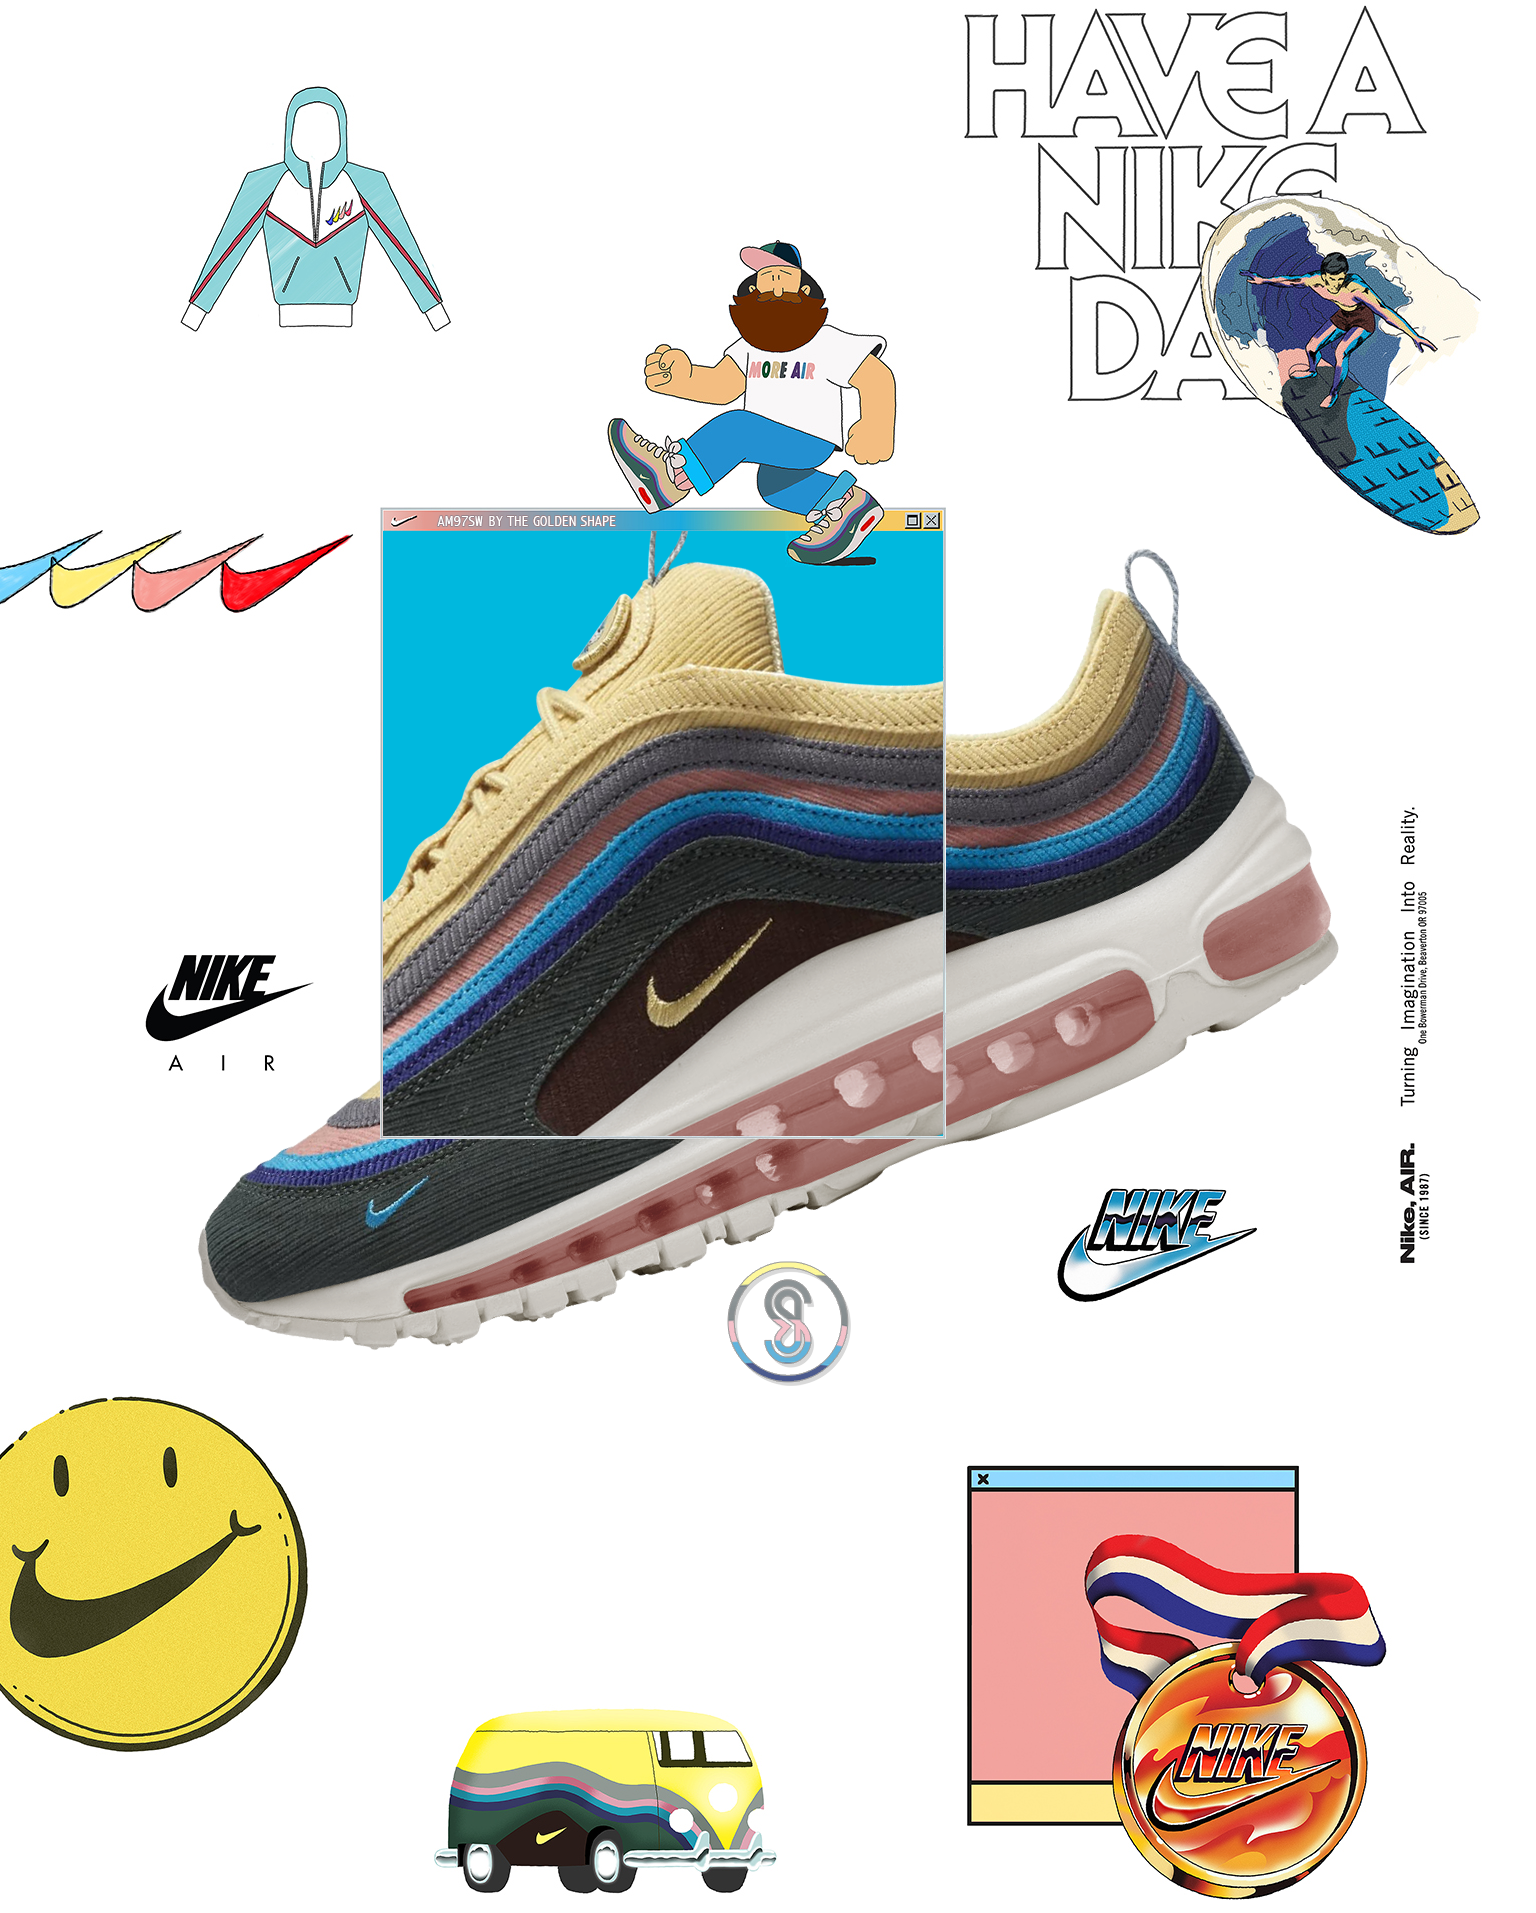 Nike Air Max 97 Sean Wotherspoon Air Max Day 2018  94c70d24c